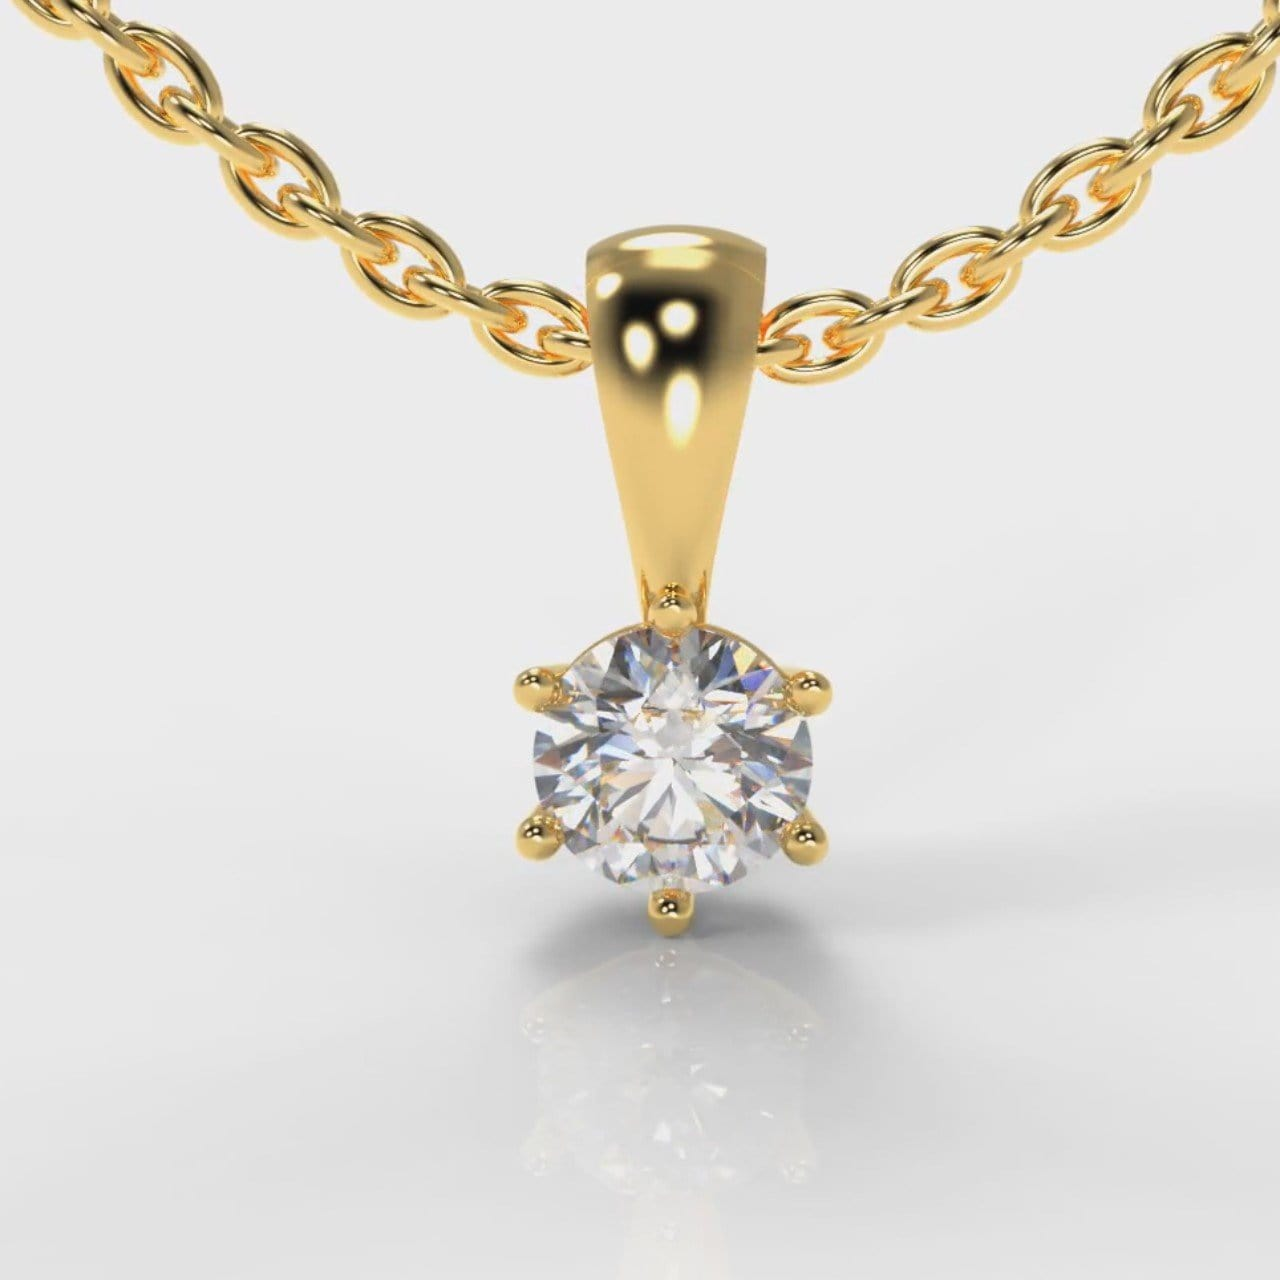 Six Claw Diamond Pendant - Yellow Gold